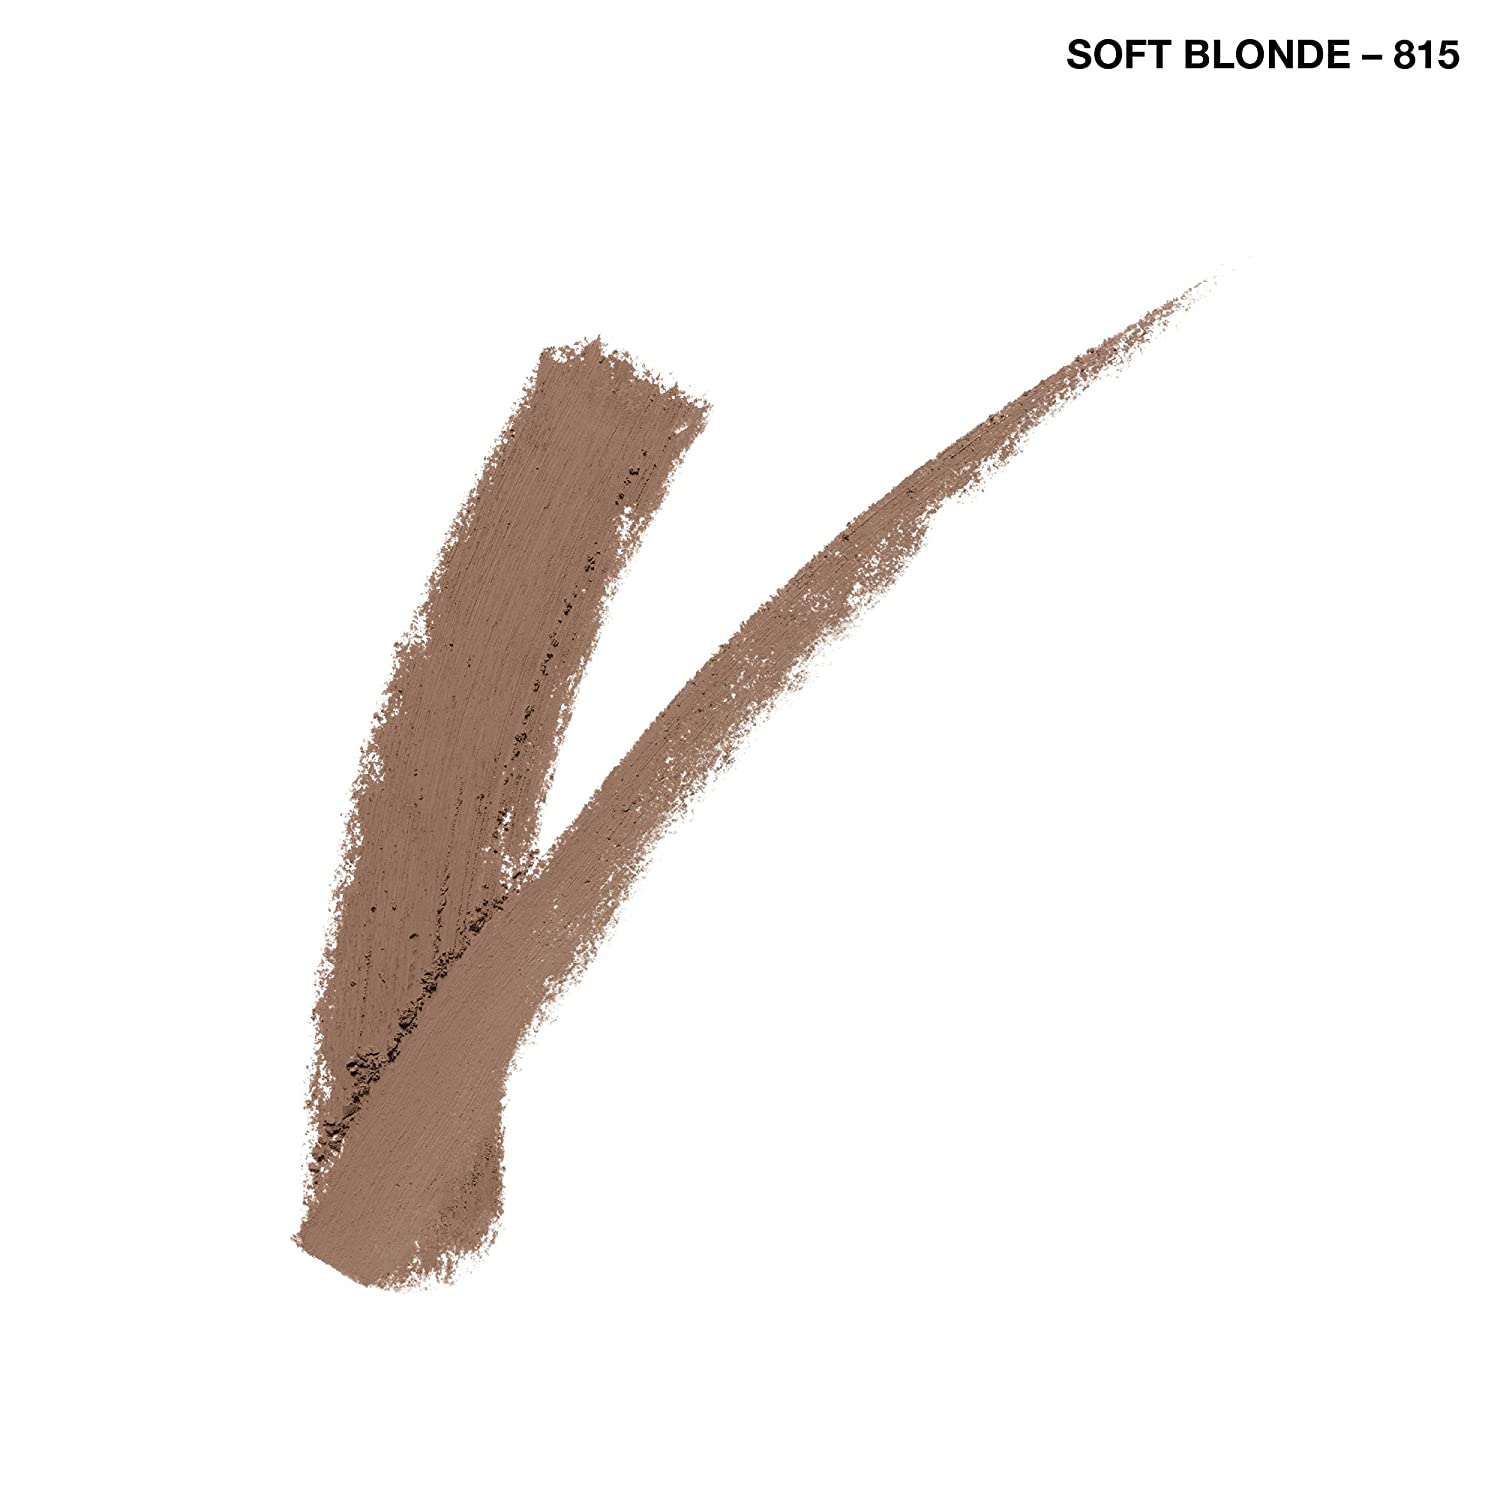 COVERGIRL - Easy Breezy Fill, Shape & Define Brow Powder - Packaging May Vary Coty CGOMS5270